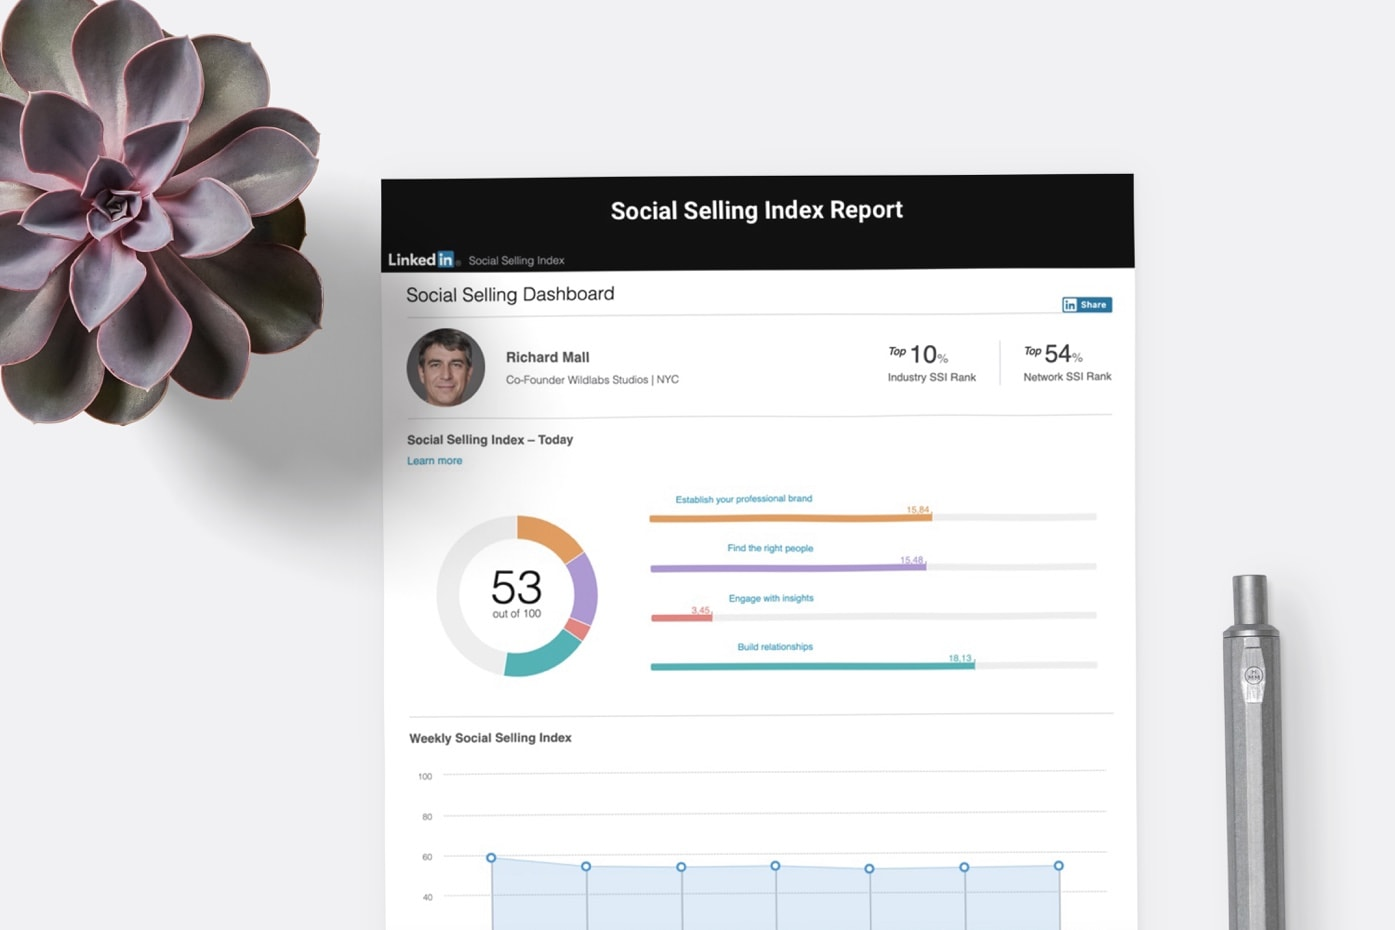 Social Selling Index from LinkedIn being reported on a paper